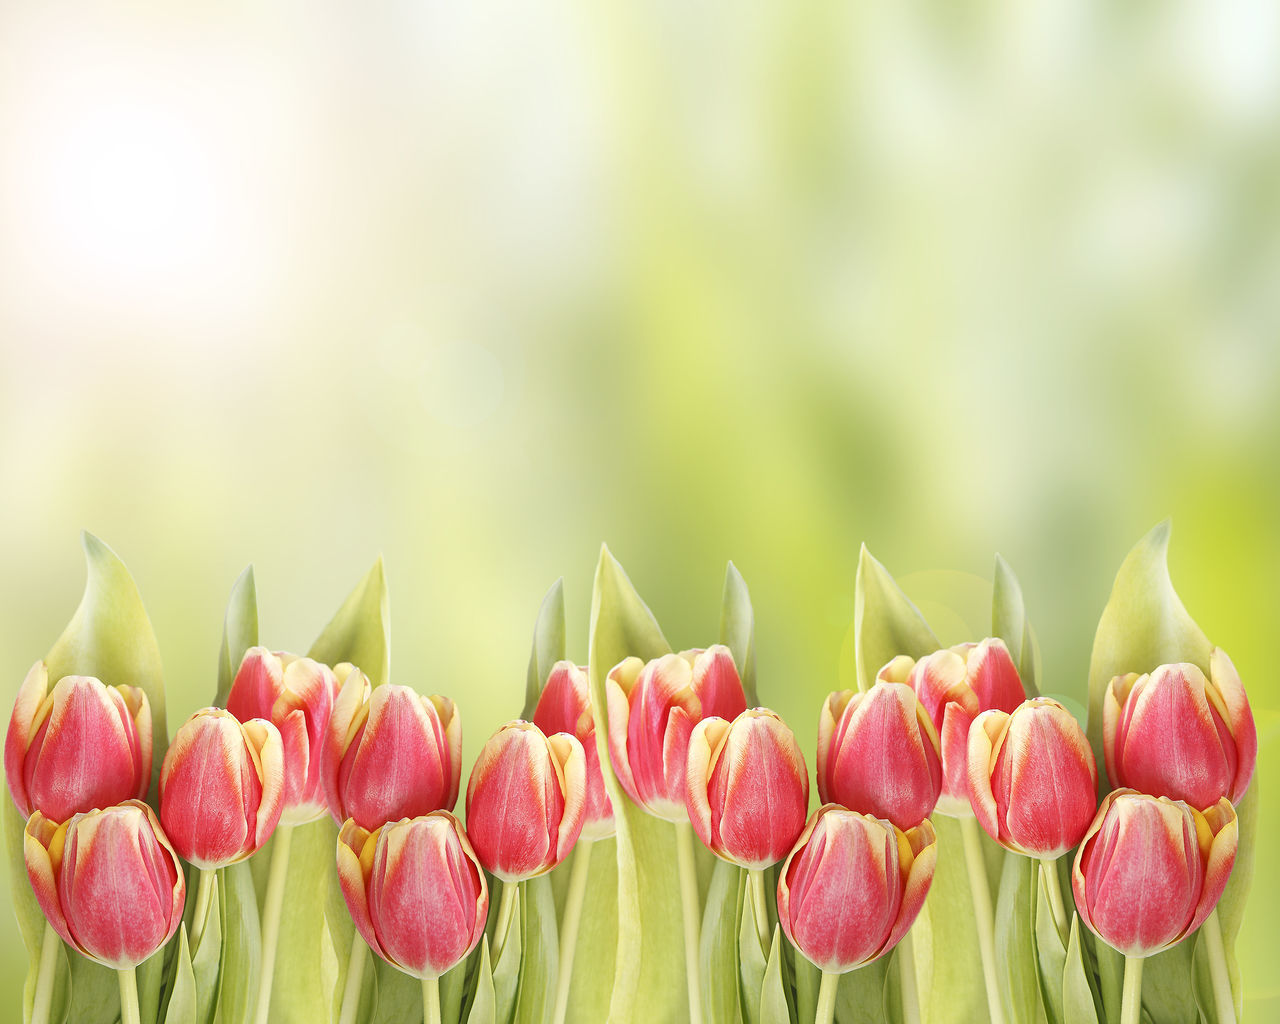 flower, nature, beauty in nature, growth, freshness, fragility, petal, plant, close-up, green color, tulip, no people, focus on foreground, day, outdoors, flower head, blooming